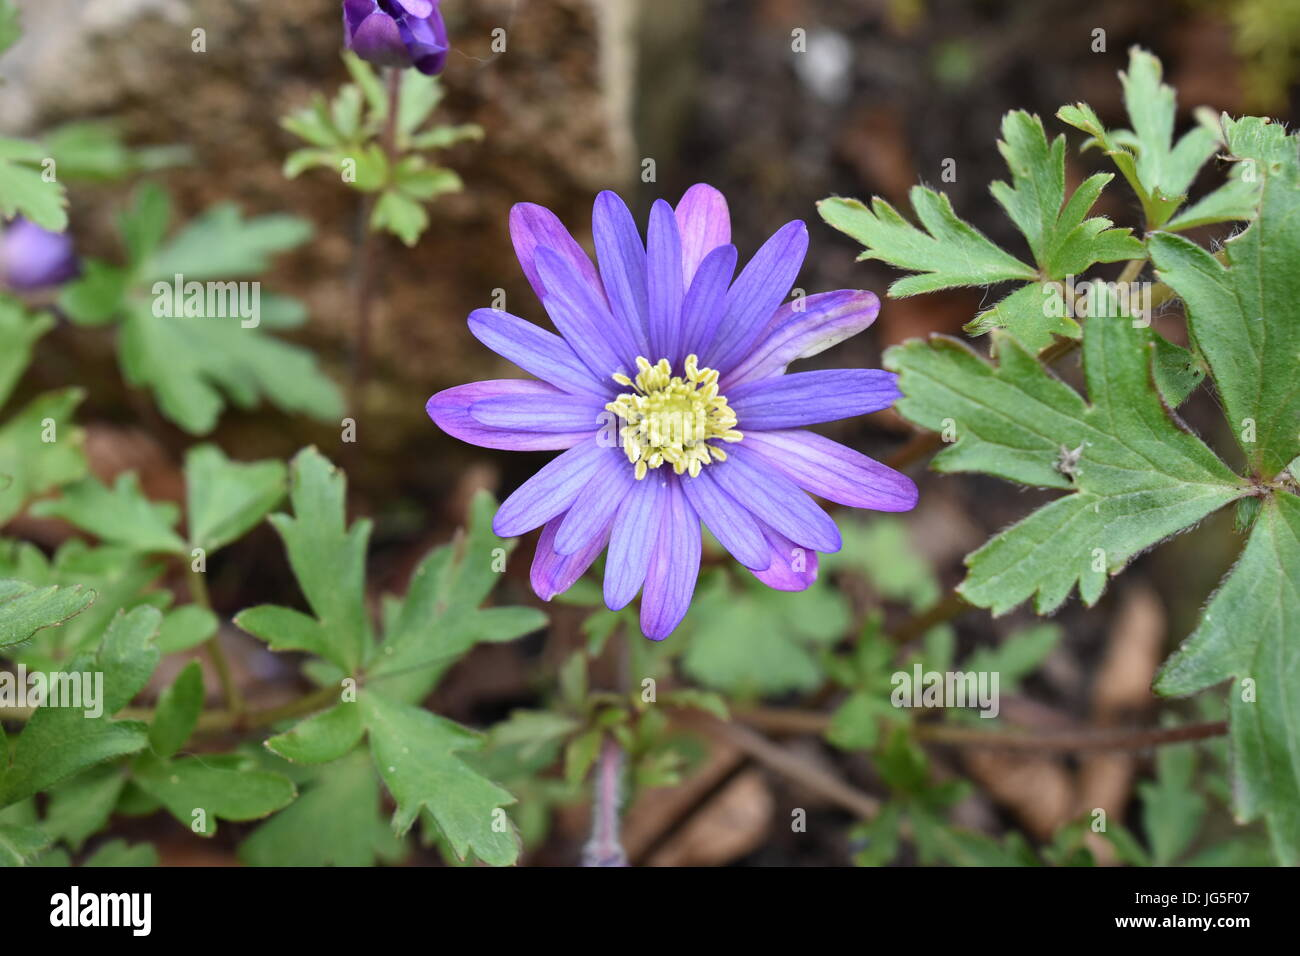 Purple flowers with yellow center stock photos purple flowers with purple daisy wind flower with yellow center stock image mightylinksfo